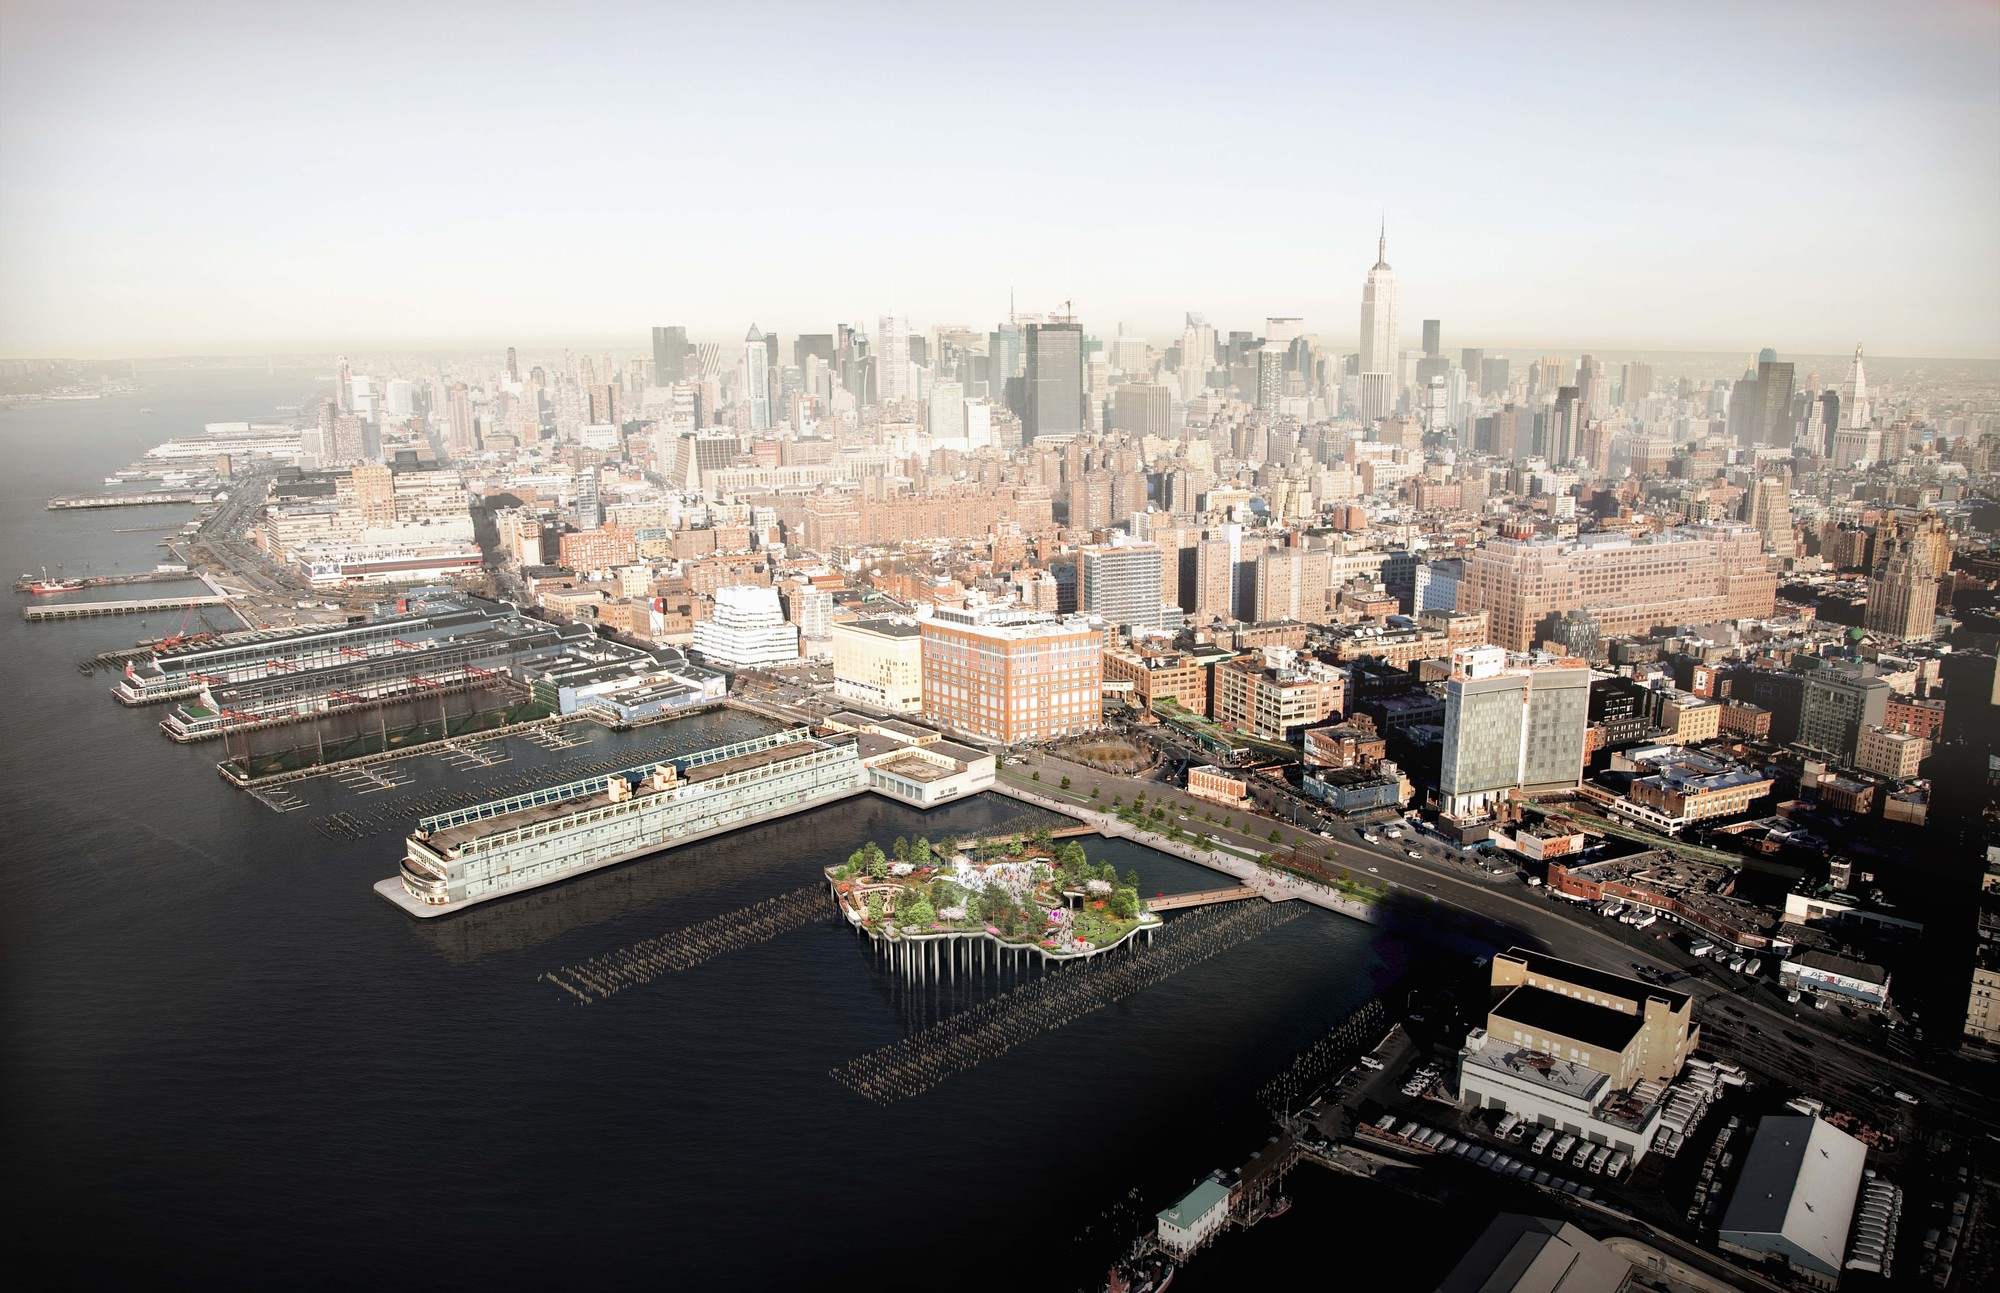 Pier 55 in context of the west side. Image © Pier55, Inc. and Heatherwick Studio, Renders by Luxigon